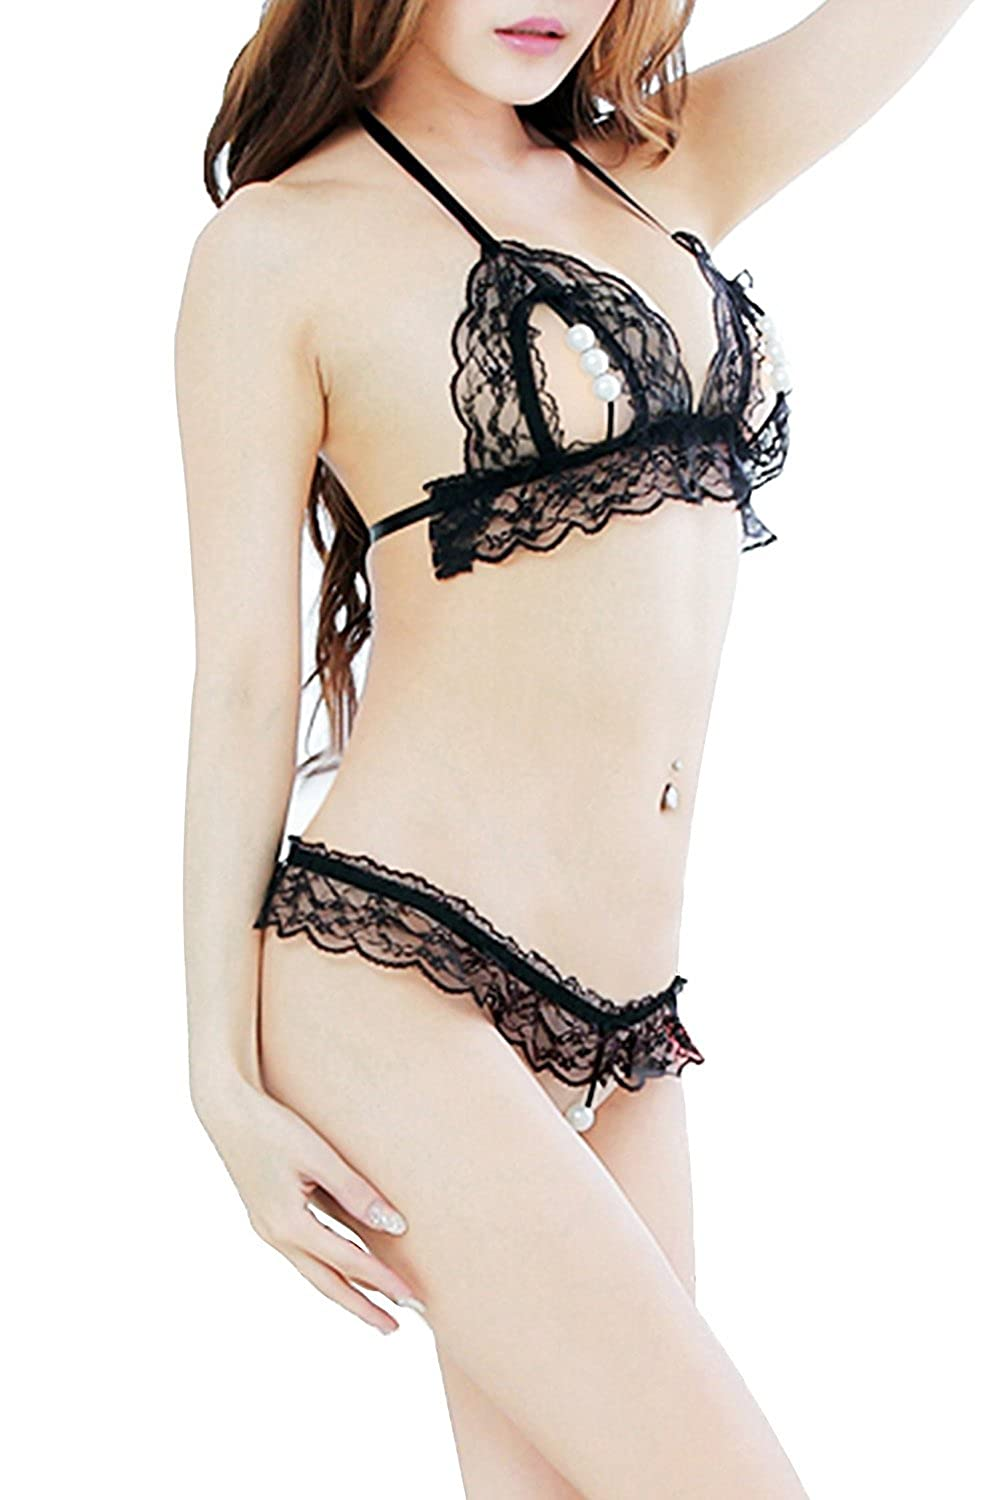 14929d0fe Amazon.com  TOGIC Fashion Women 3 Pearls Lingerie set Transparent Lace  Sleepwear Thong B0007-blackOne Size  Clothing